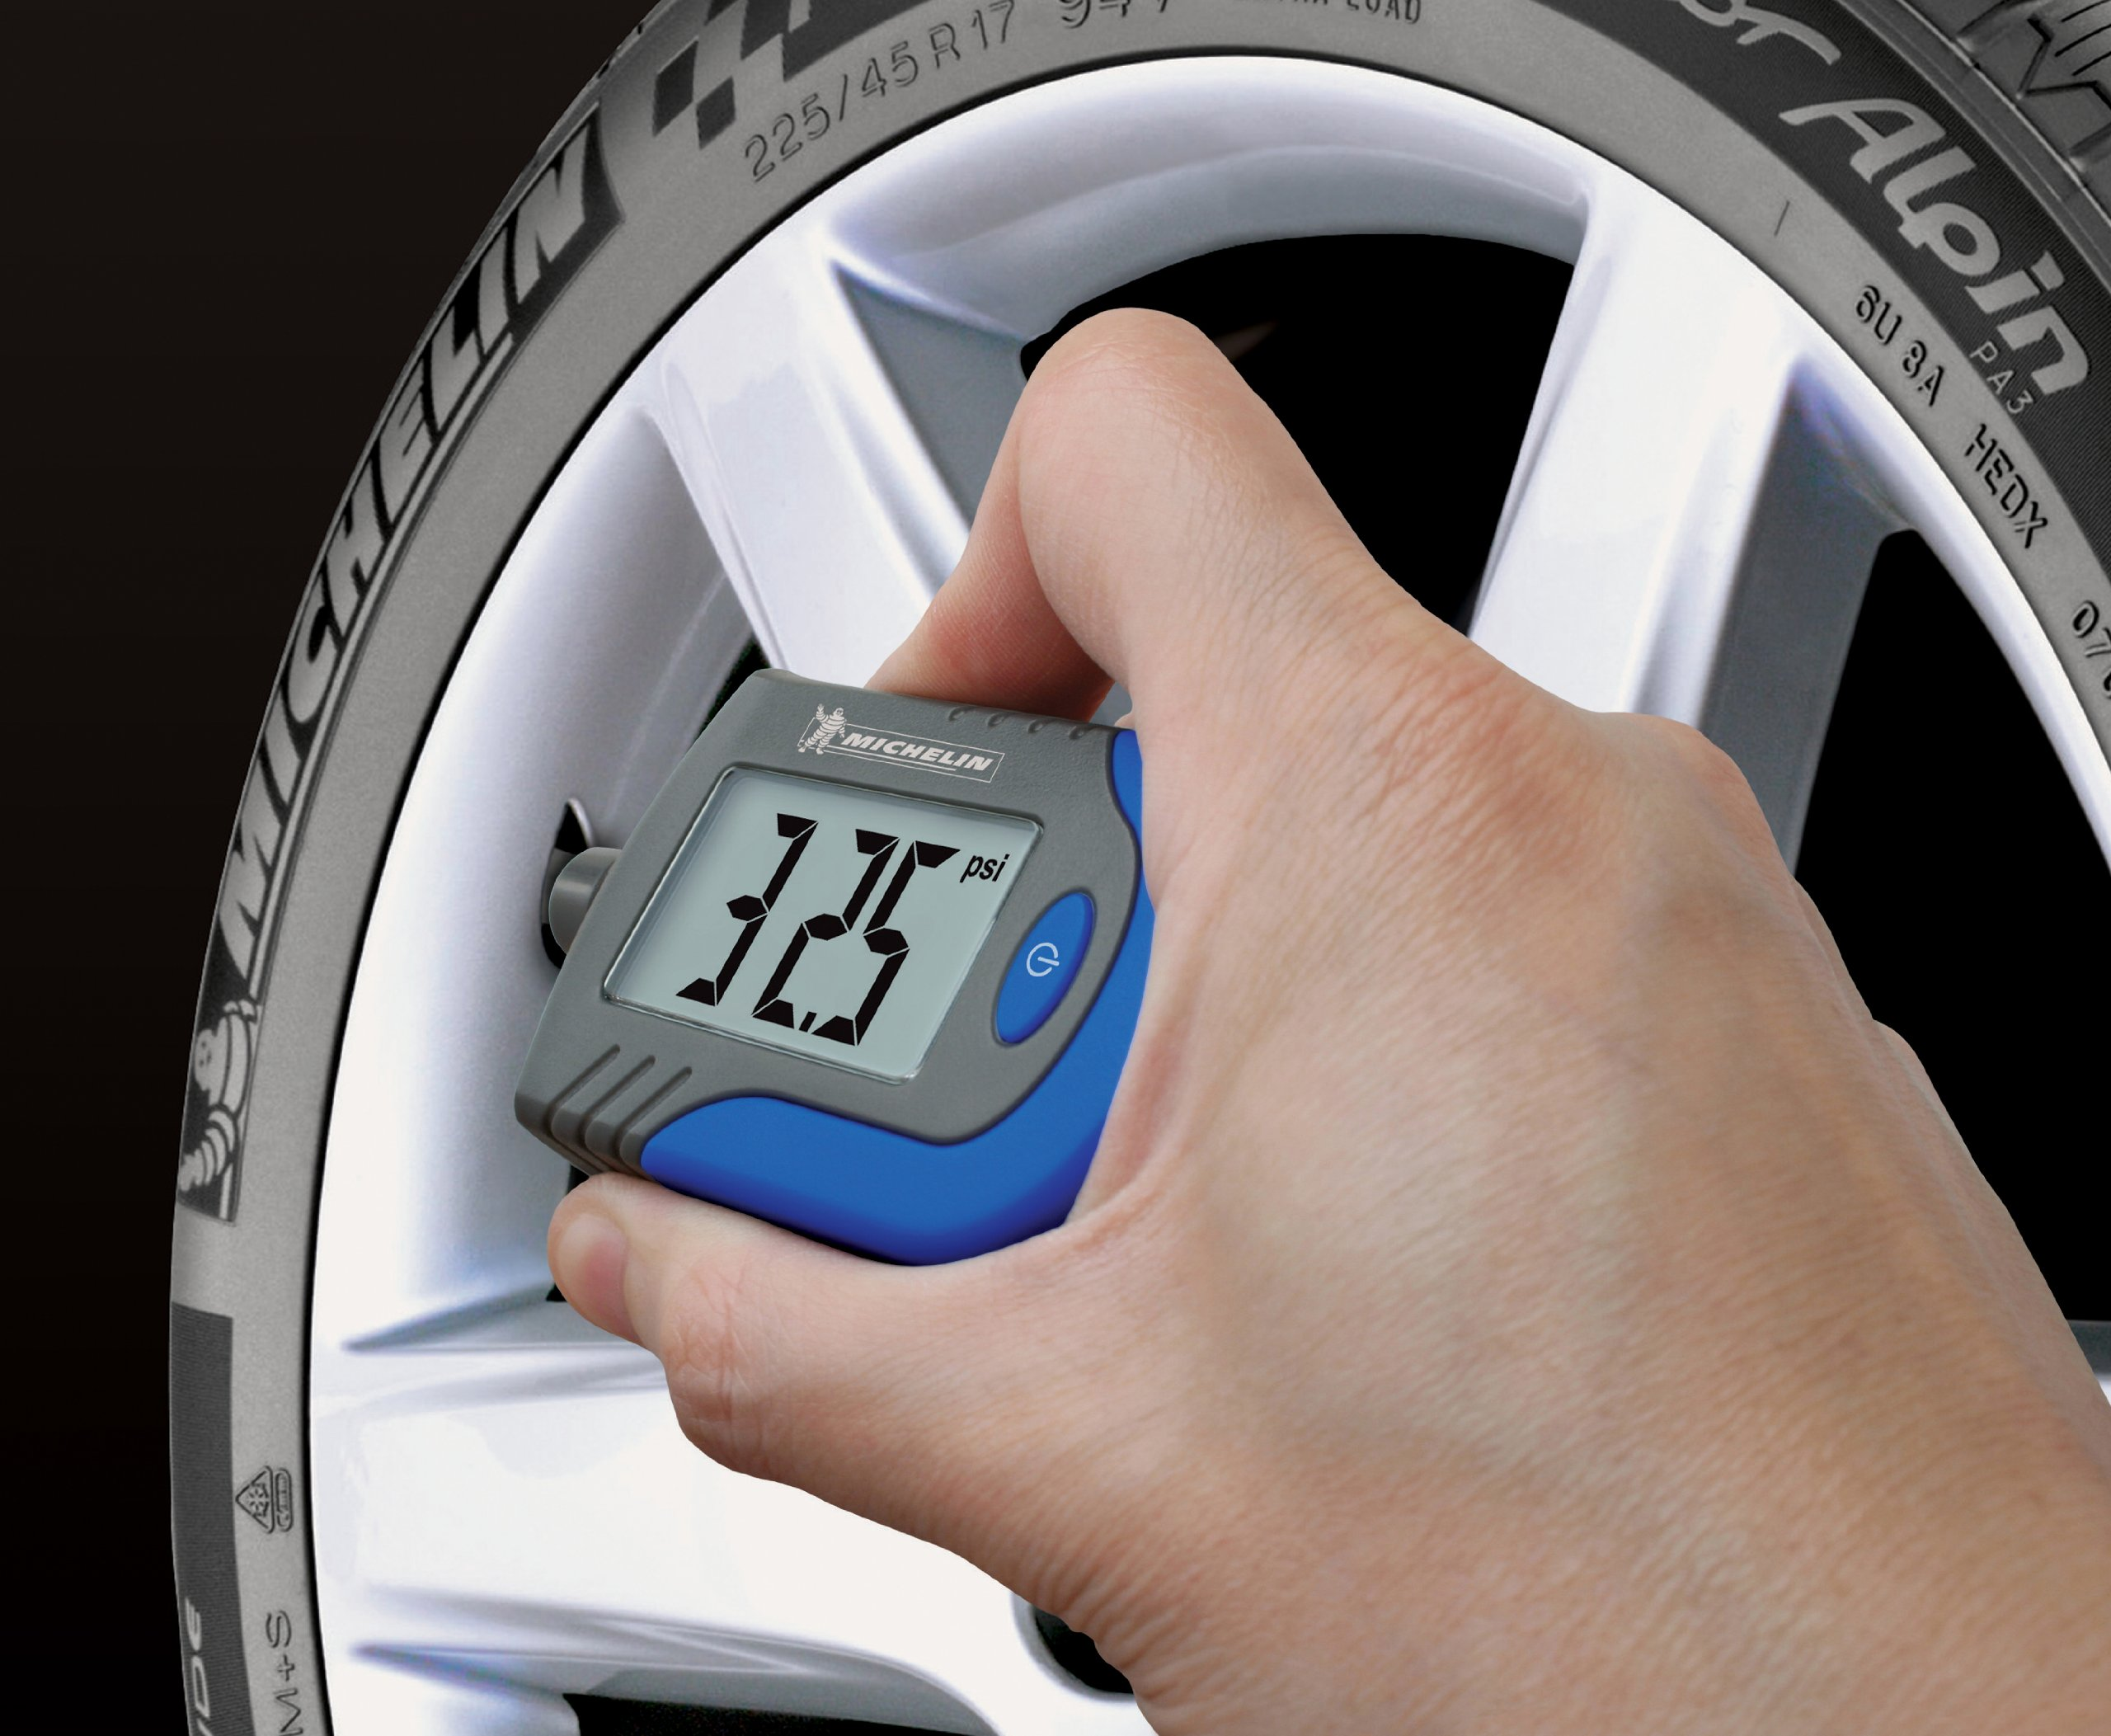 MICHELIN MN-4203B Digital Tire Gauge with Tread Depth Indicator by MICHELIN (Image #2)